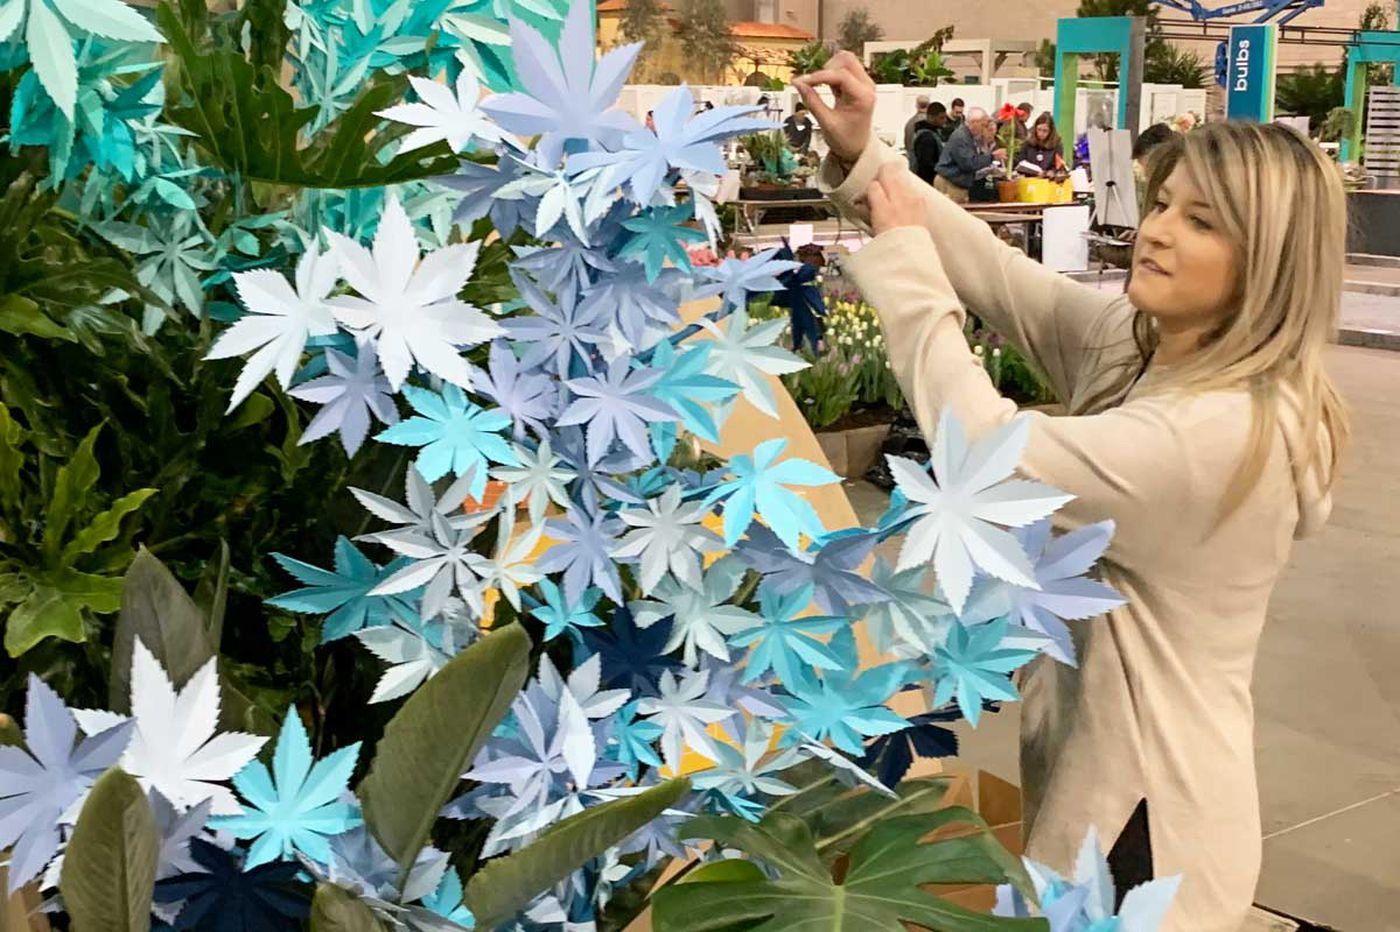 Spotlight is on weed at this year's Philadelphia Flower Show